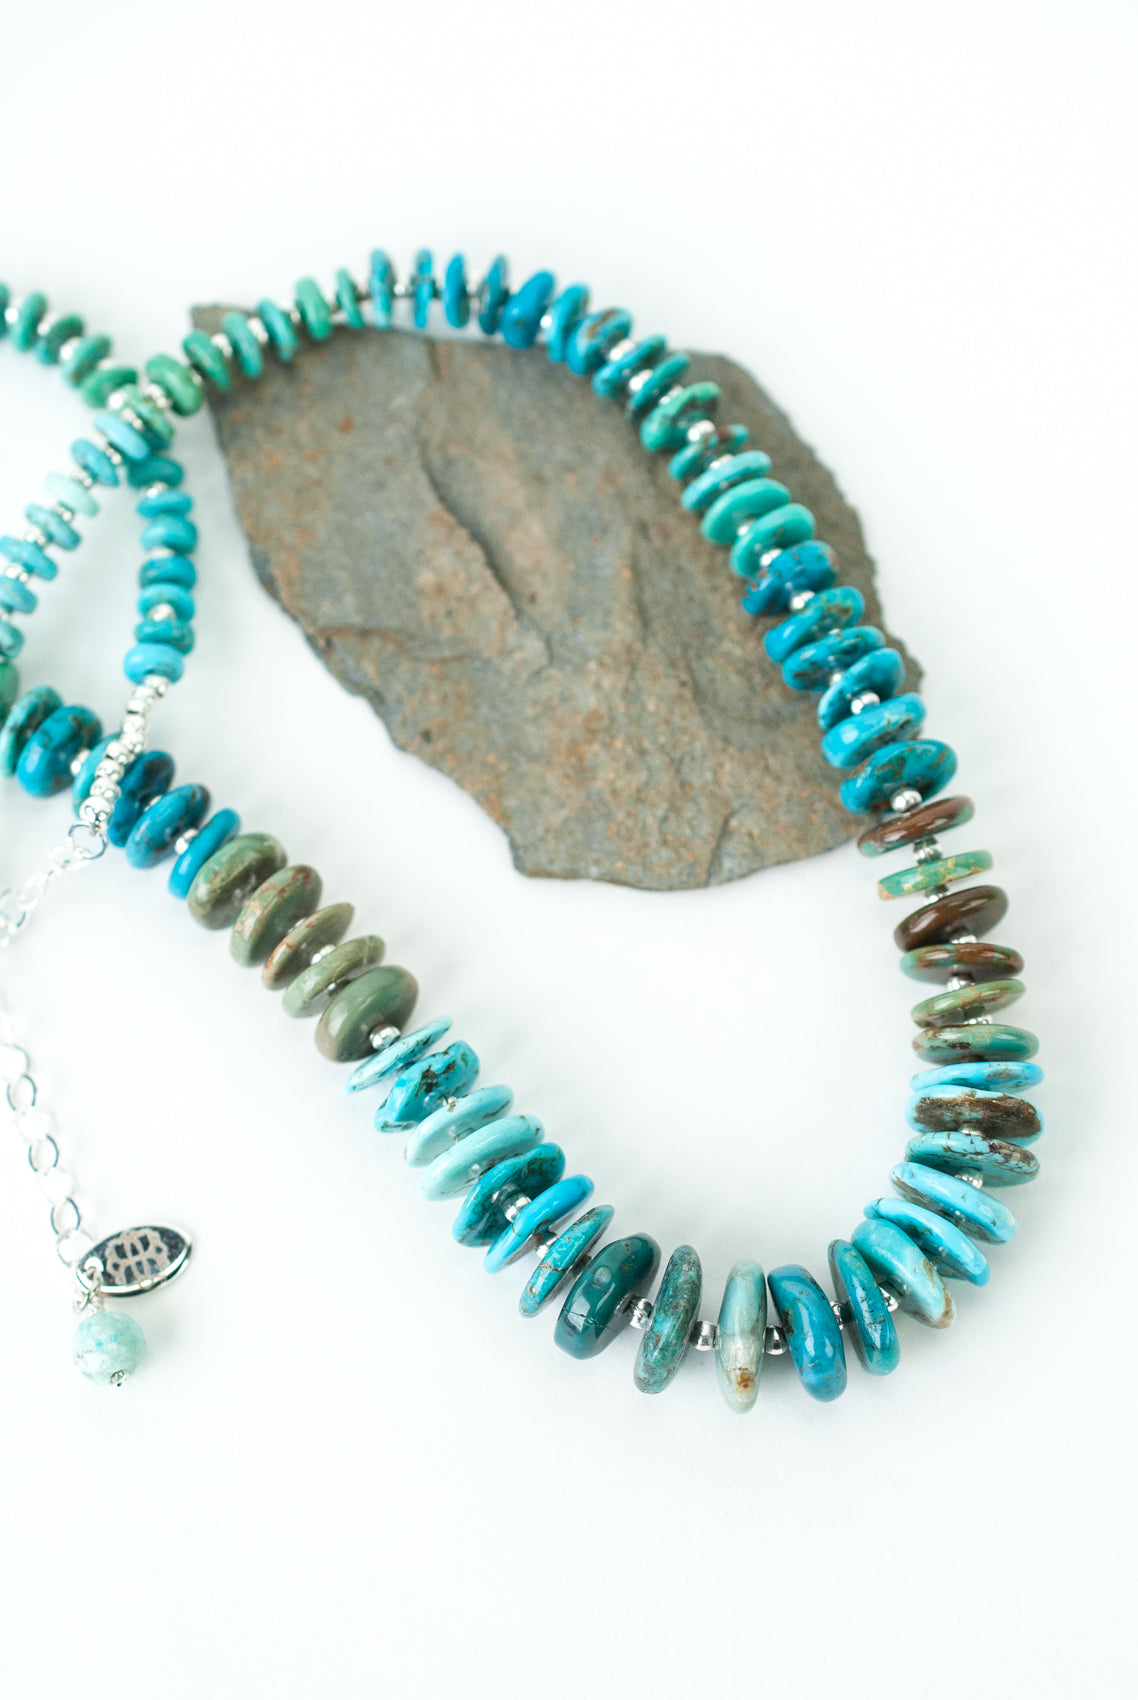 "One of a Kind 16-18"" Rainbow Turquoise Collage Necklace"